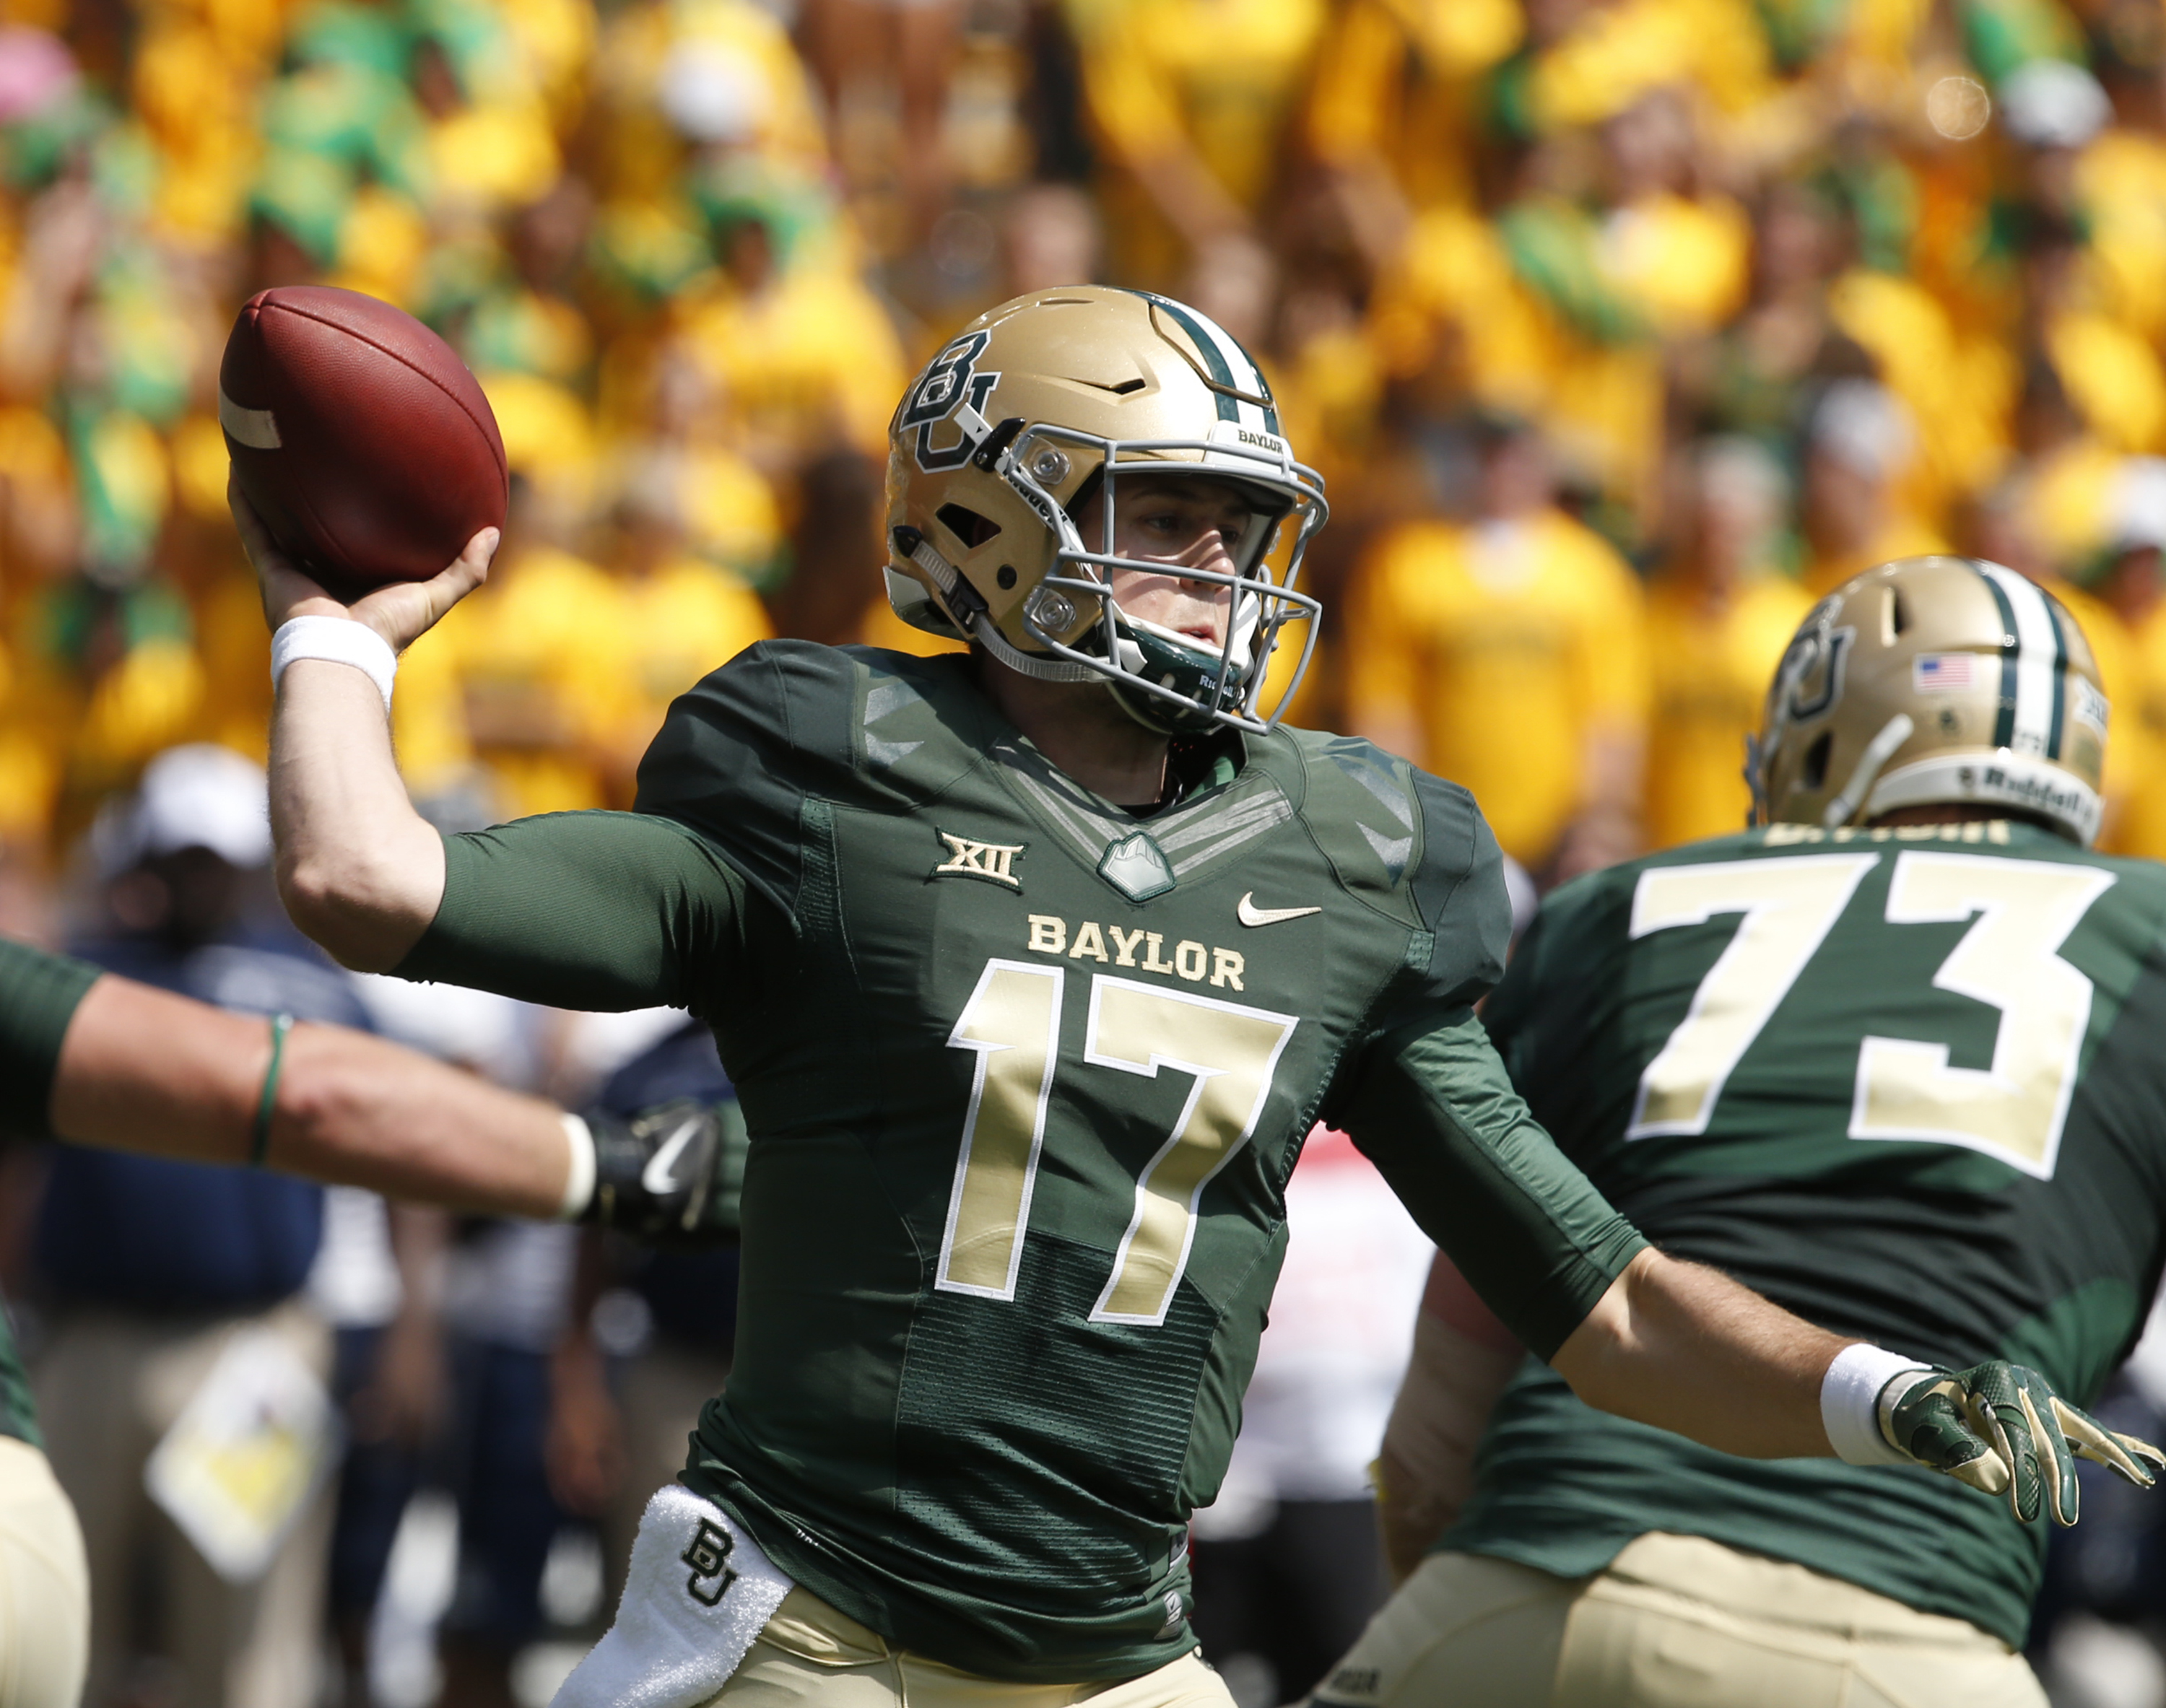 Baylor quarterback Seth Russell (17) throws down field against Rice in the first half of an NCAA college football game, Saturday, Sept. 26, 2015, in Waco, Texas. (AP Photo/Rod Aydelotte)